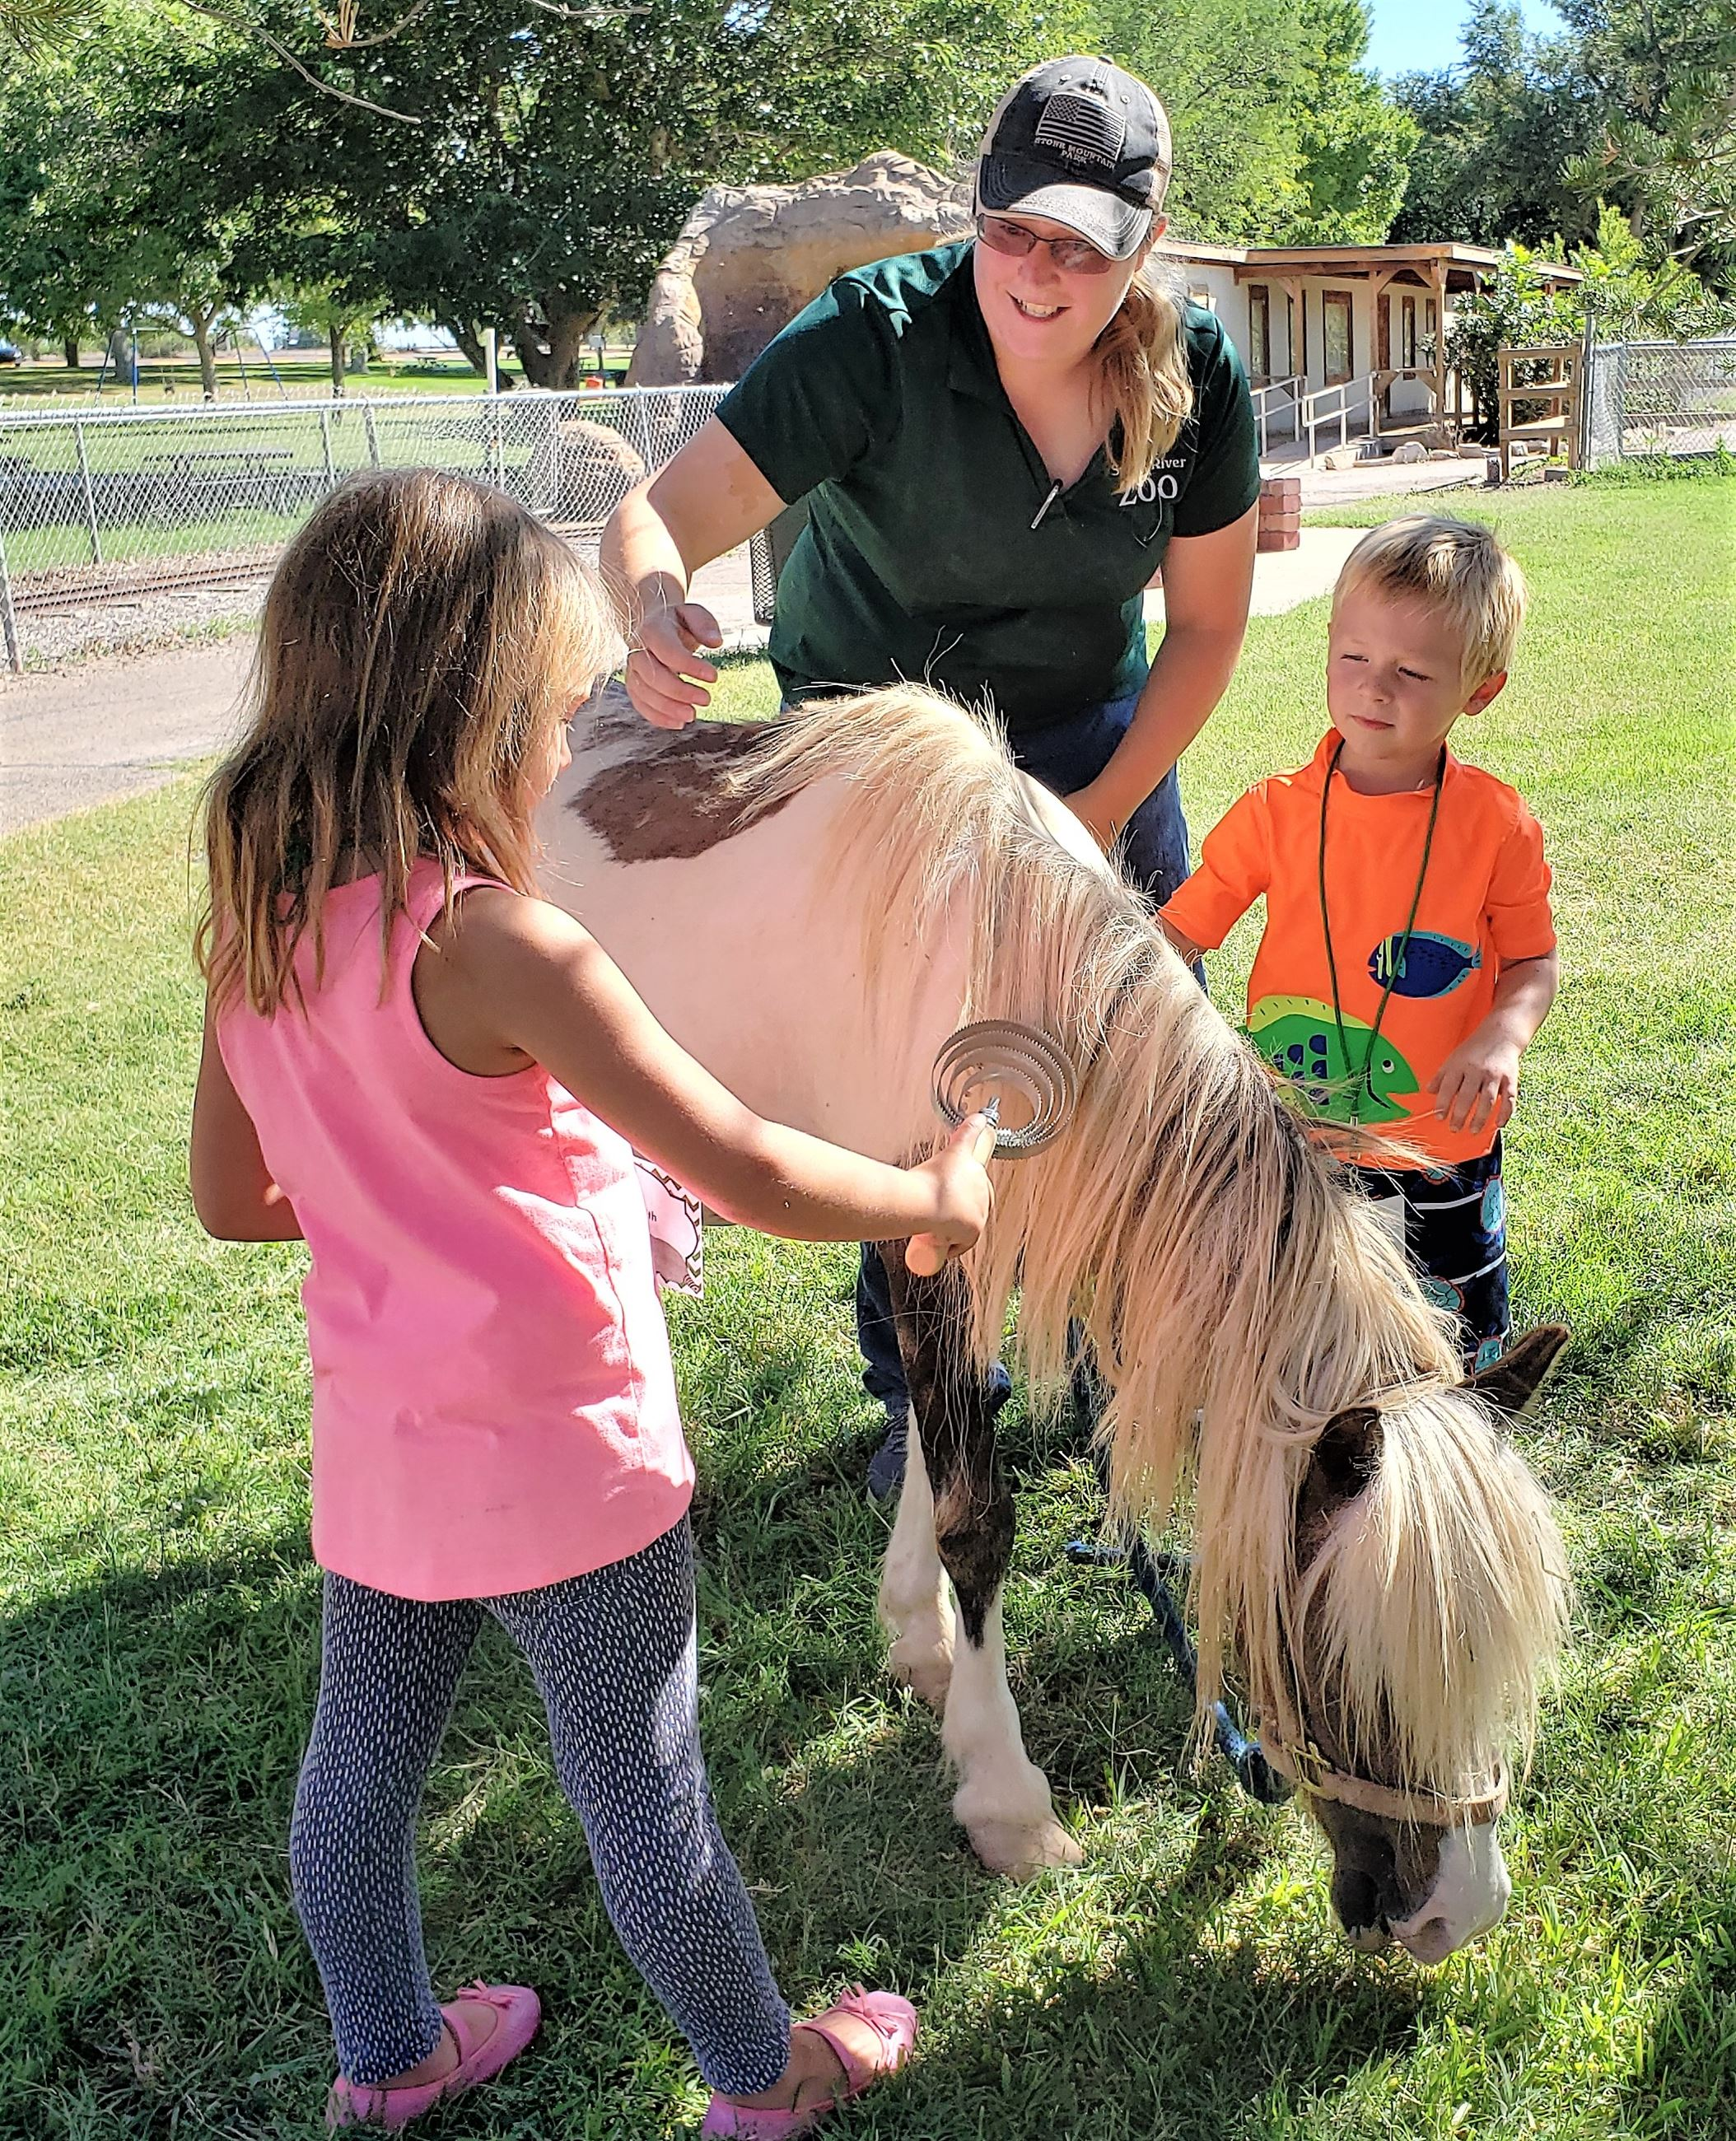 Andrea Cole with horse at zoo during kids program (July 2019)